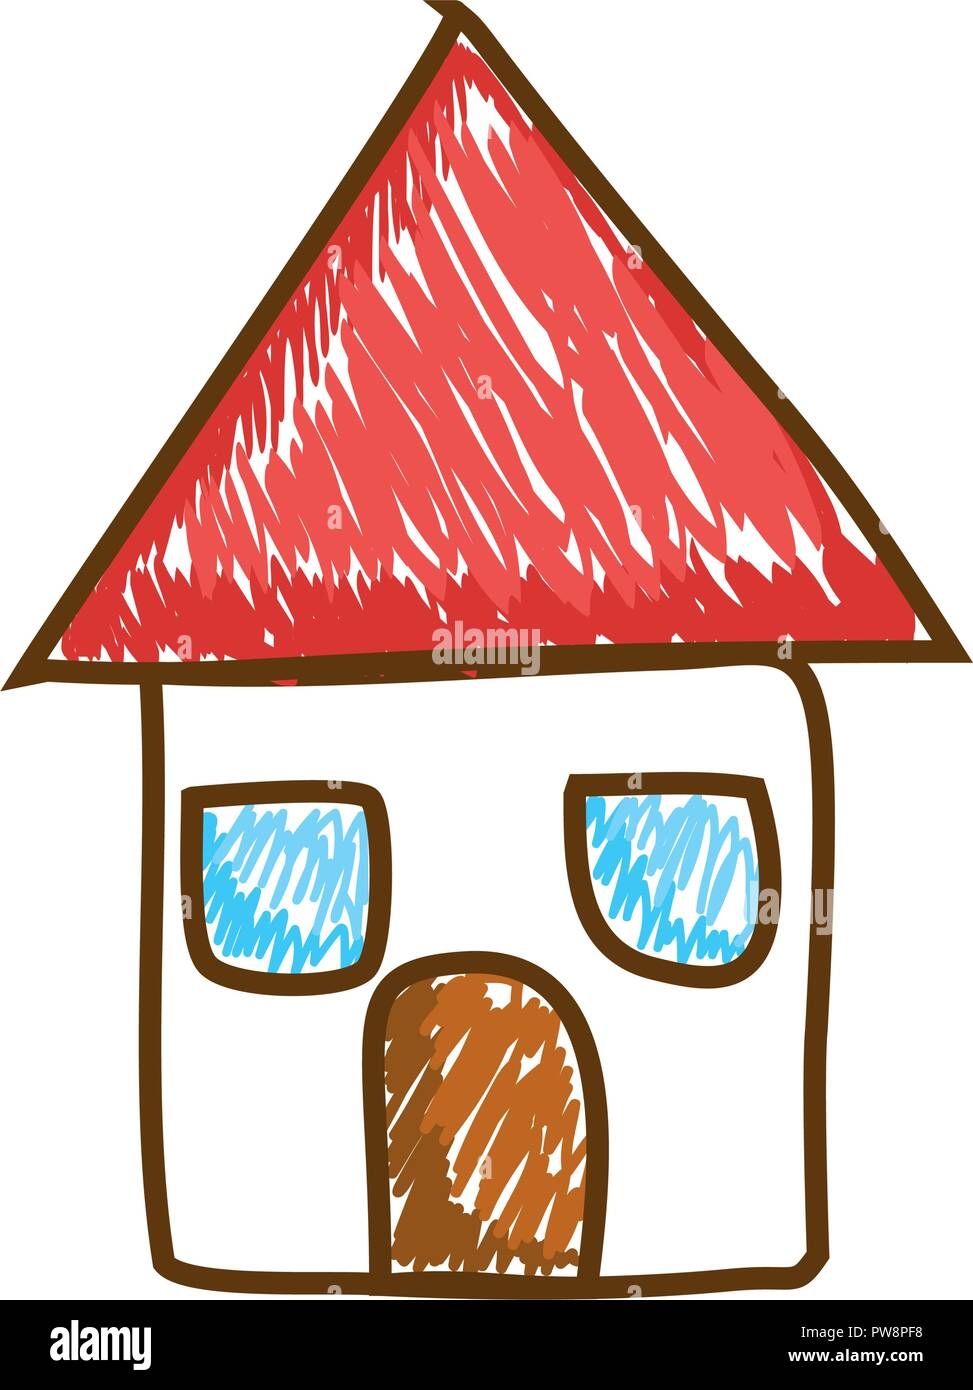 cute house drawing icon vector illustration design - Stock Vector